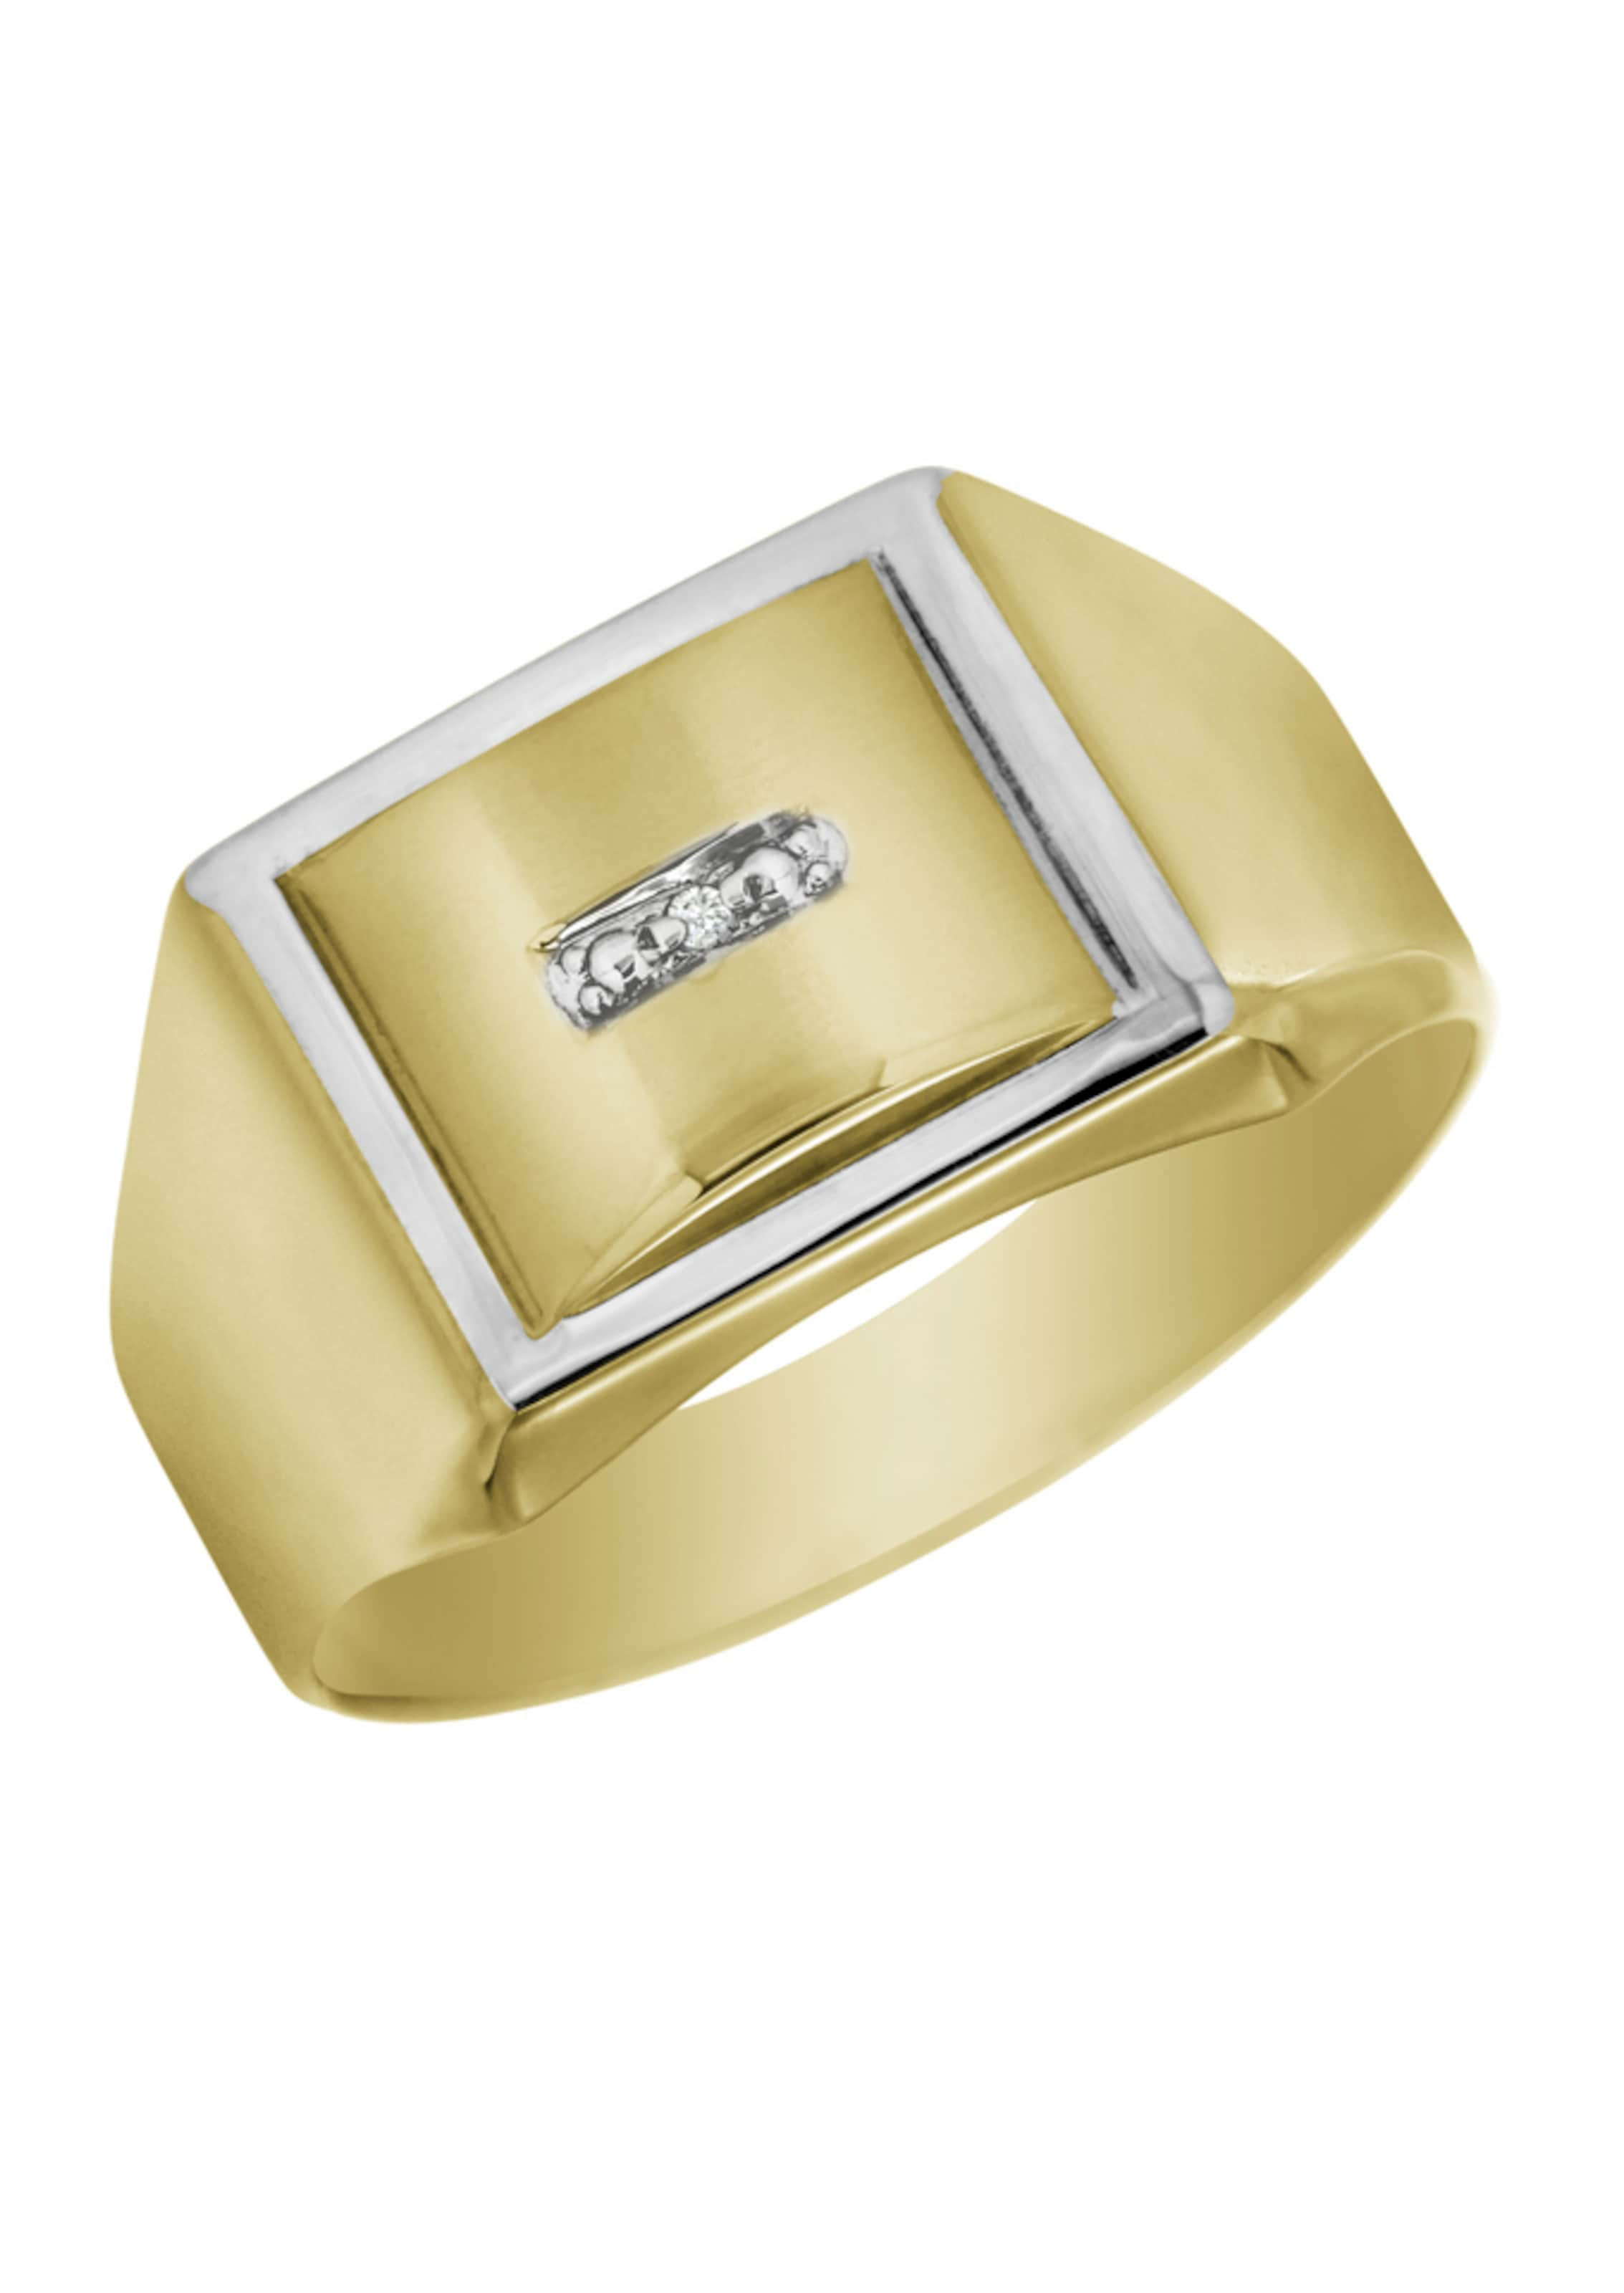 Firetti Firetti In Goldring Gold In Goldring Gold 5c4RLAj3q